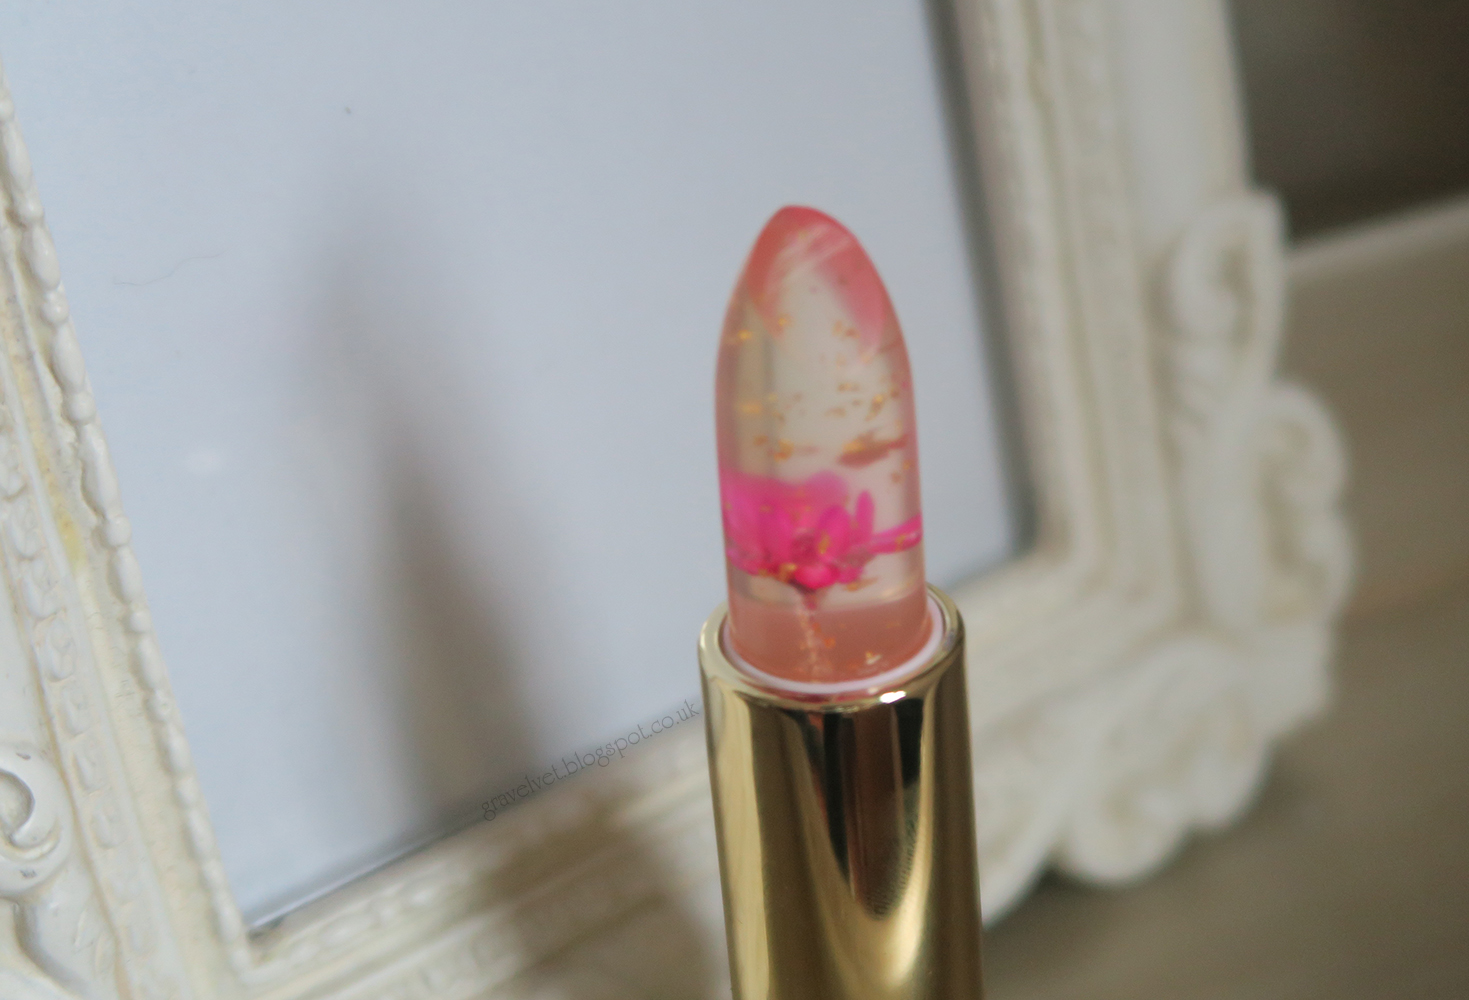 Lou Graves Kailijumei Flower Jelly Lipstick Review